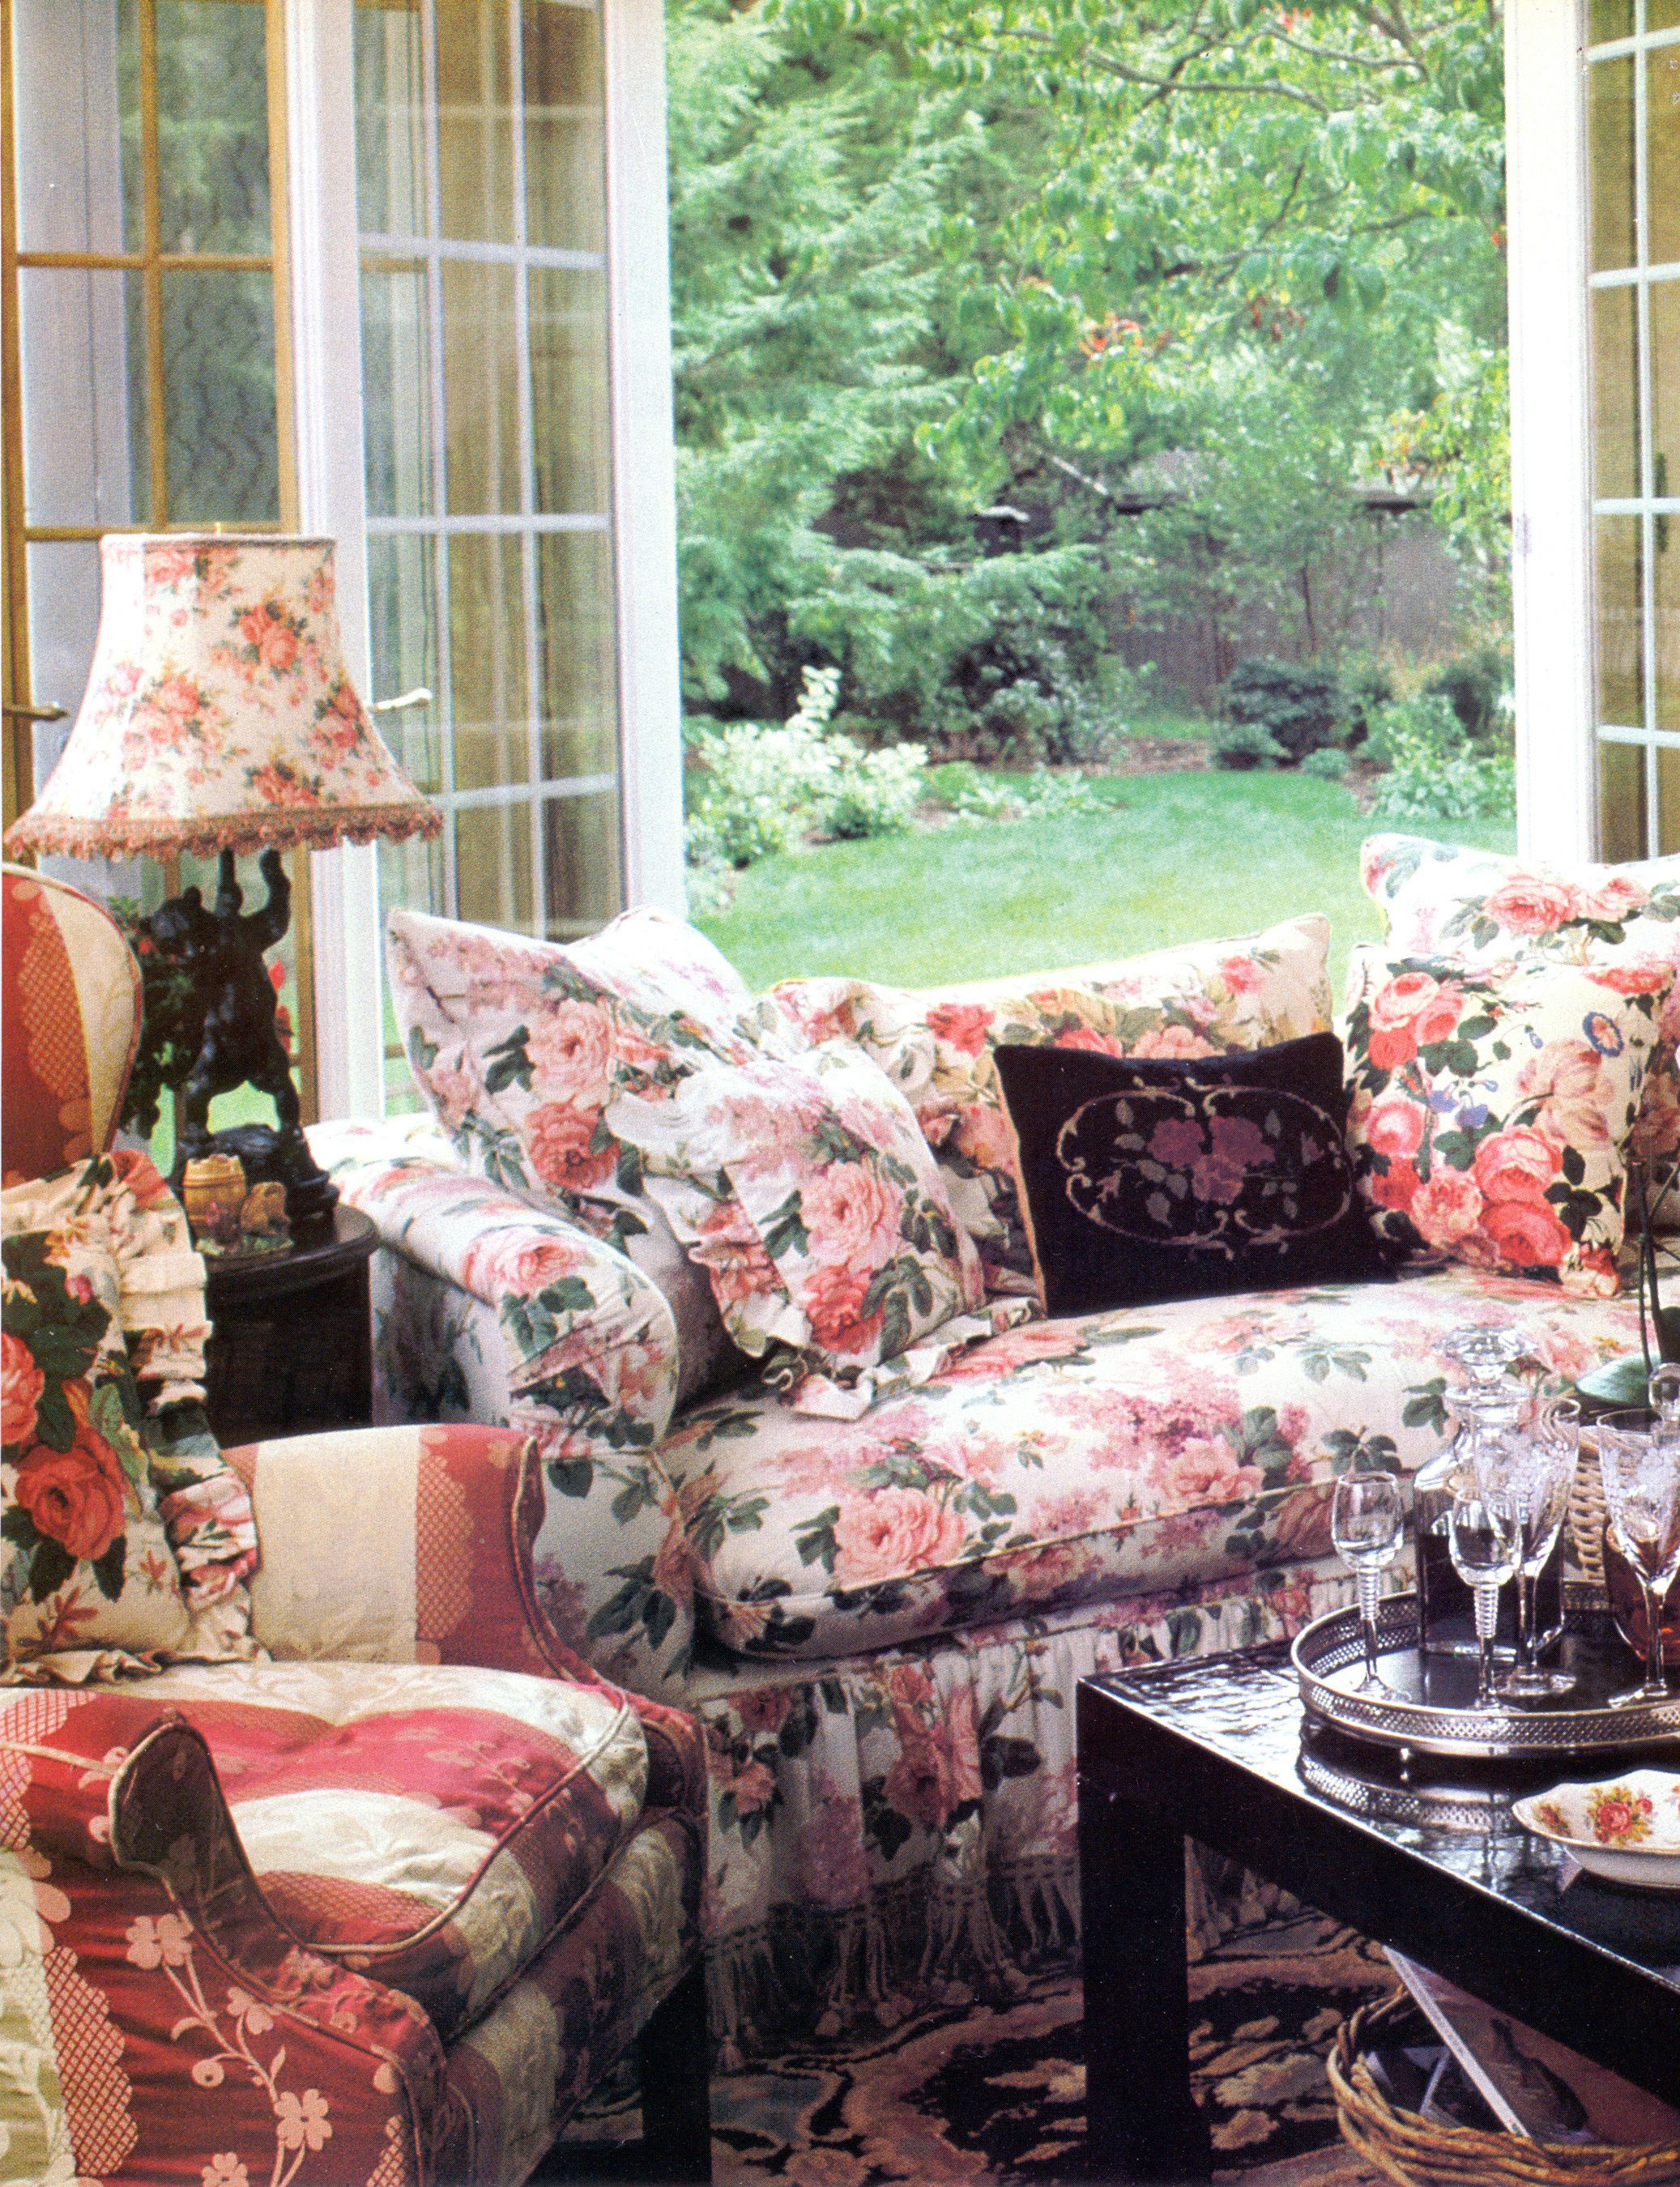 Lovely view out the window with pretty chintz fabric furniture